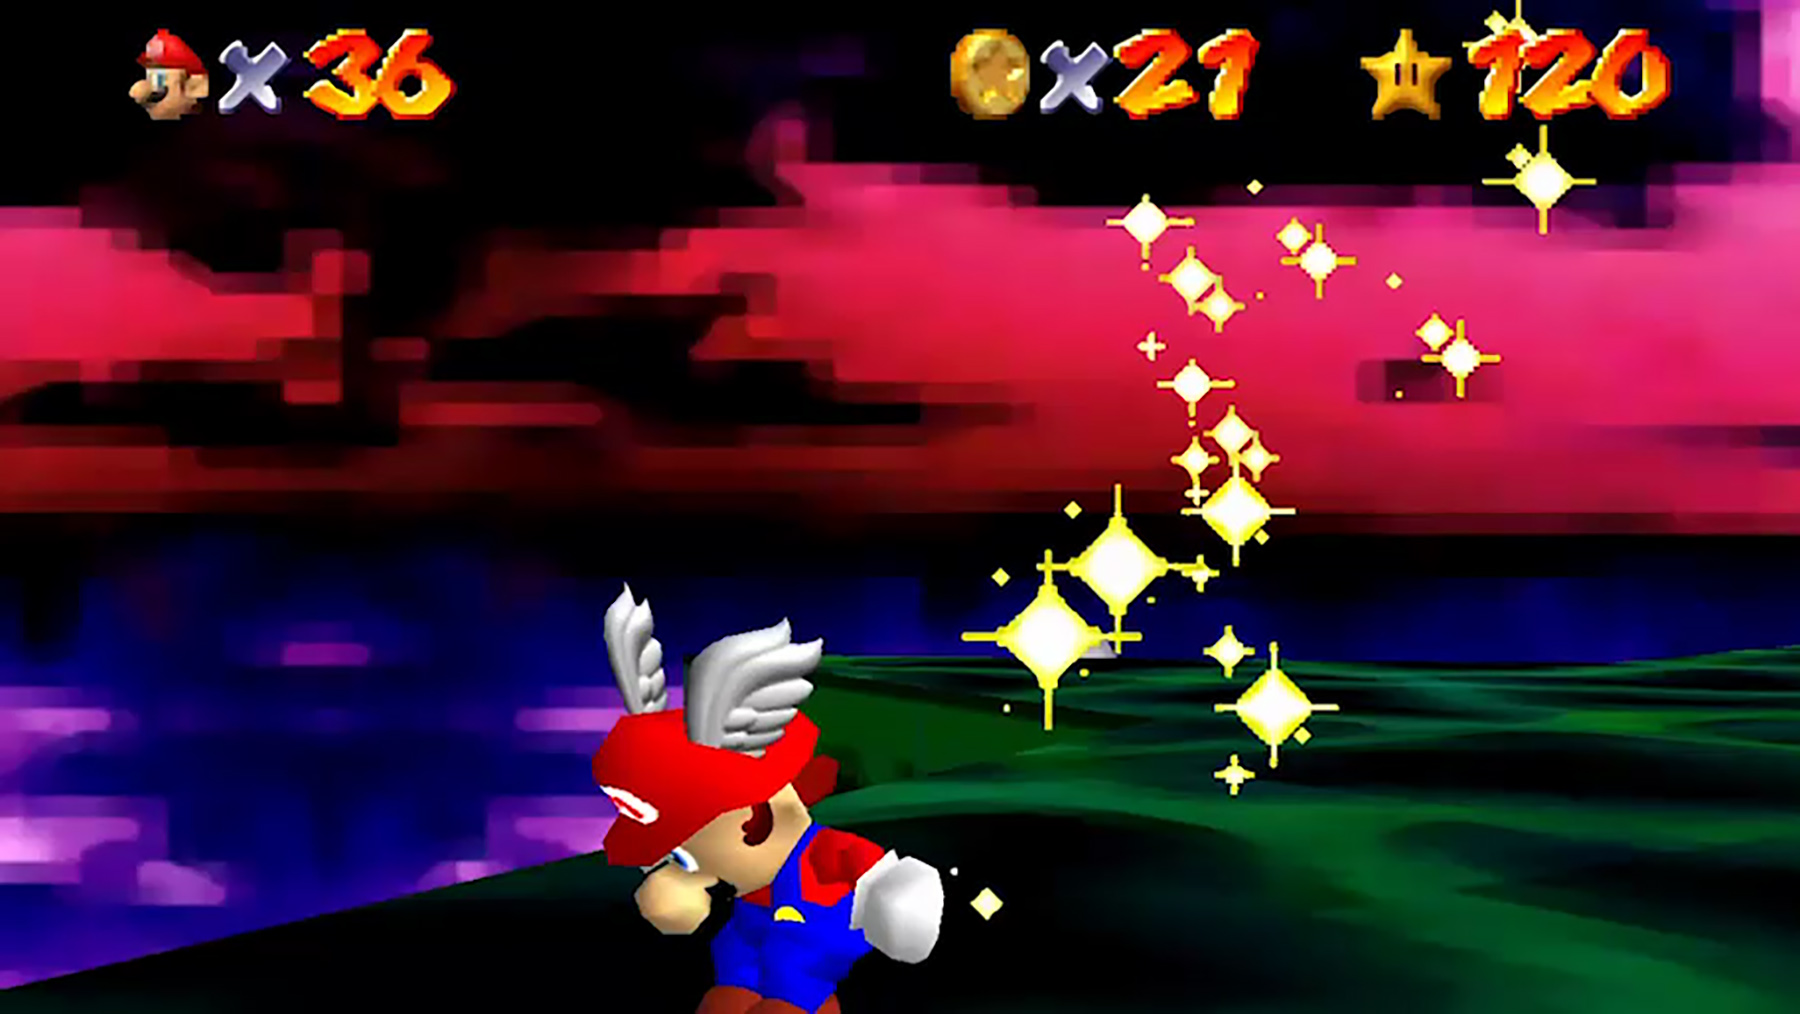 The life of an elite 'Super Mario 64' speedrunner